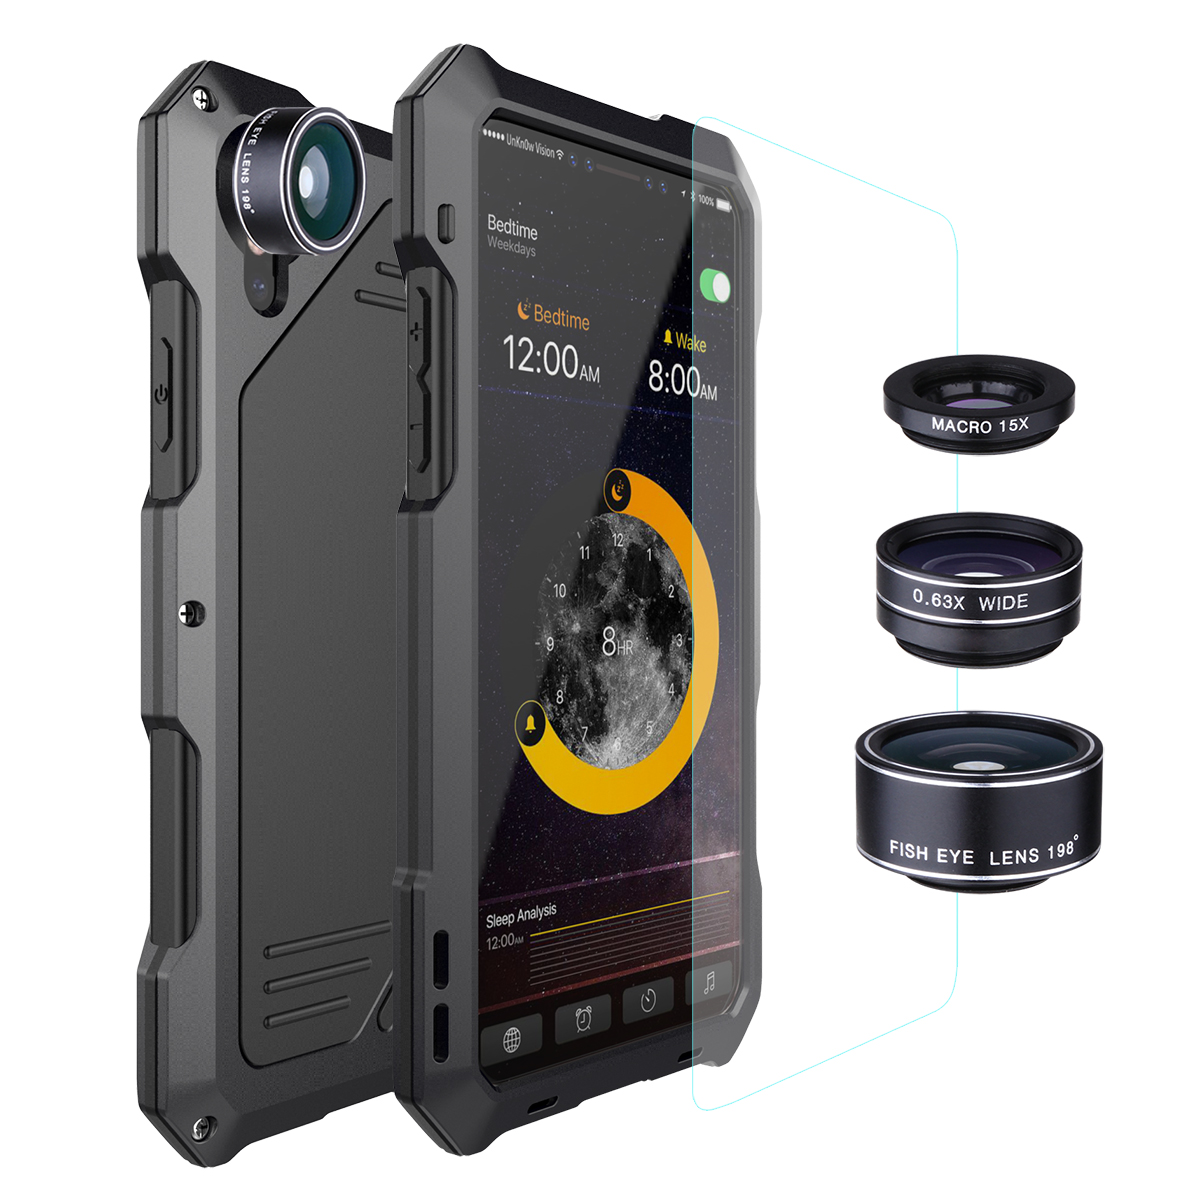 Metal Waterproof <font><b>Case</b></font> for <font><b>iPhone</b></font> X XS XR XSMAX 5S 6 <font><b>6S</b></font> 7 8 Plus Shockproof Alloy <font><b>Bumper</b></font> with Macro Wide-angle Fisheye Lens image